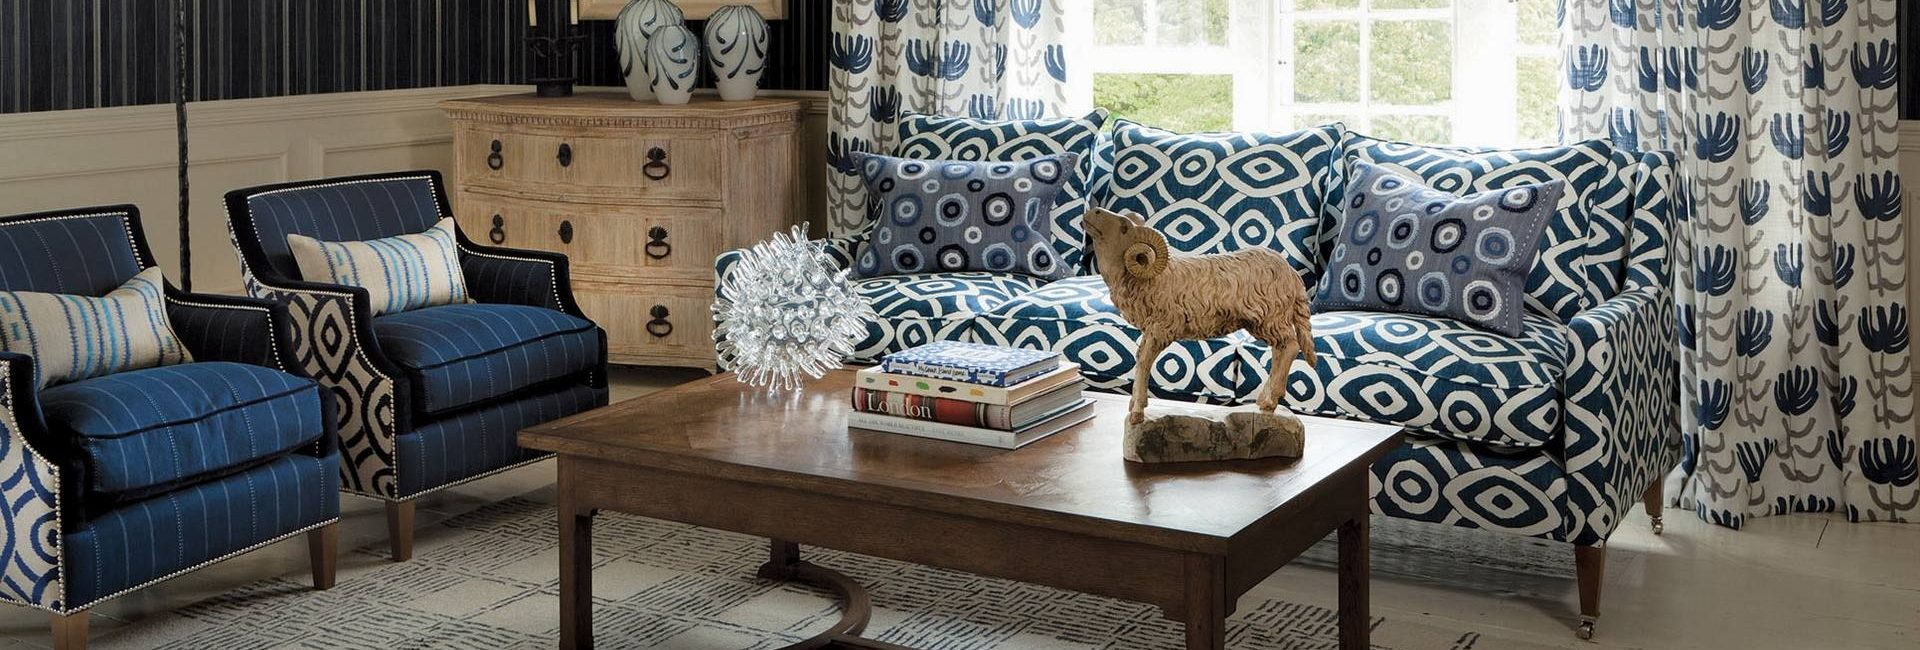 William Yeoward Alberesque fabric collection for upholstery and curtains - available from Fabric Gallery and Interiors in Dunnington, York